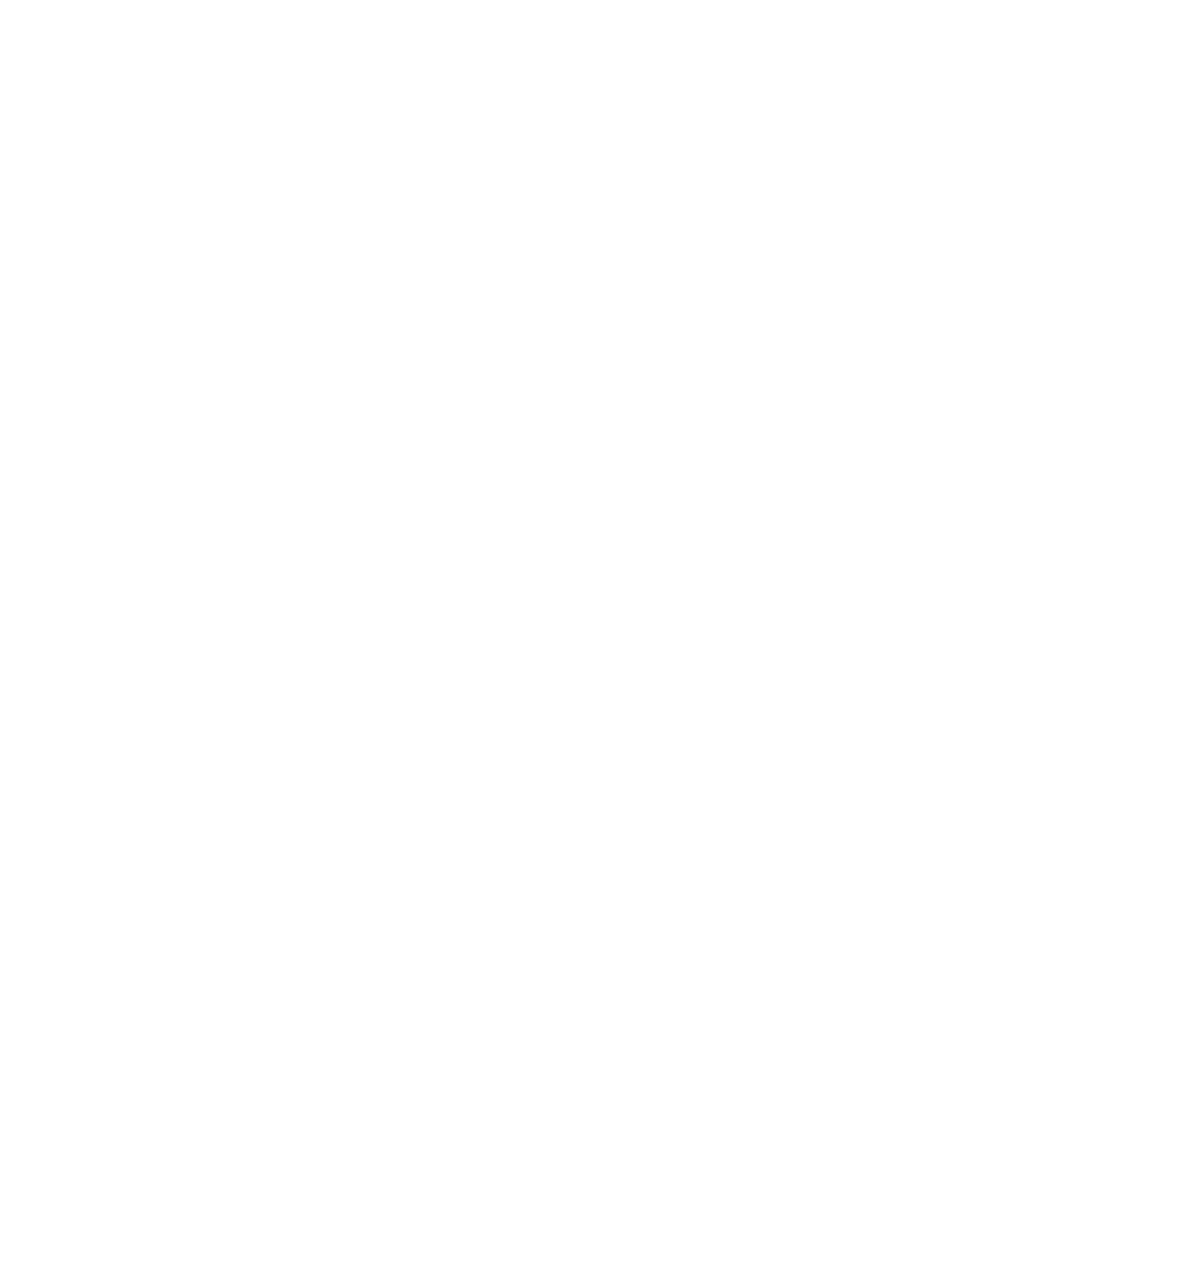 RIVERSIDE BAR Chillout